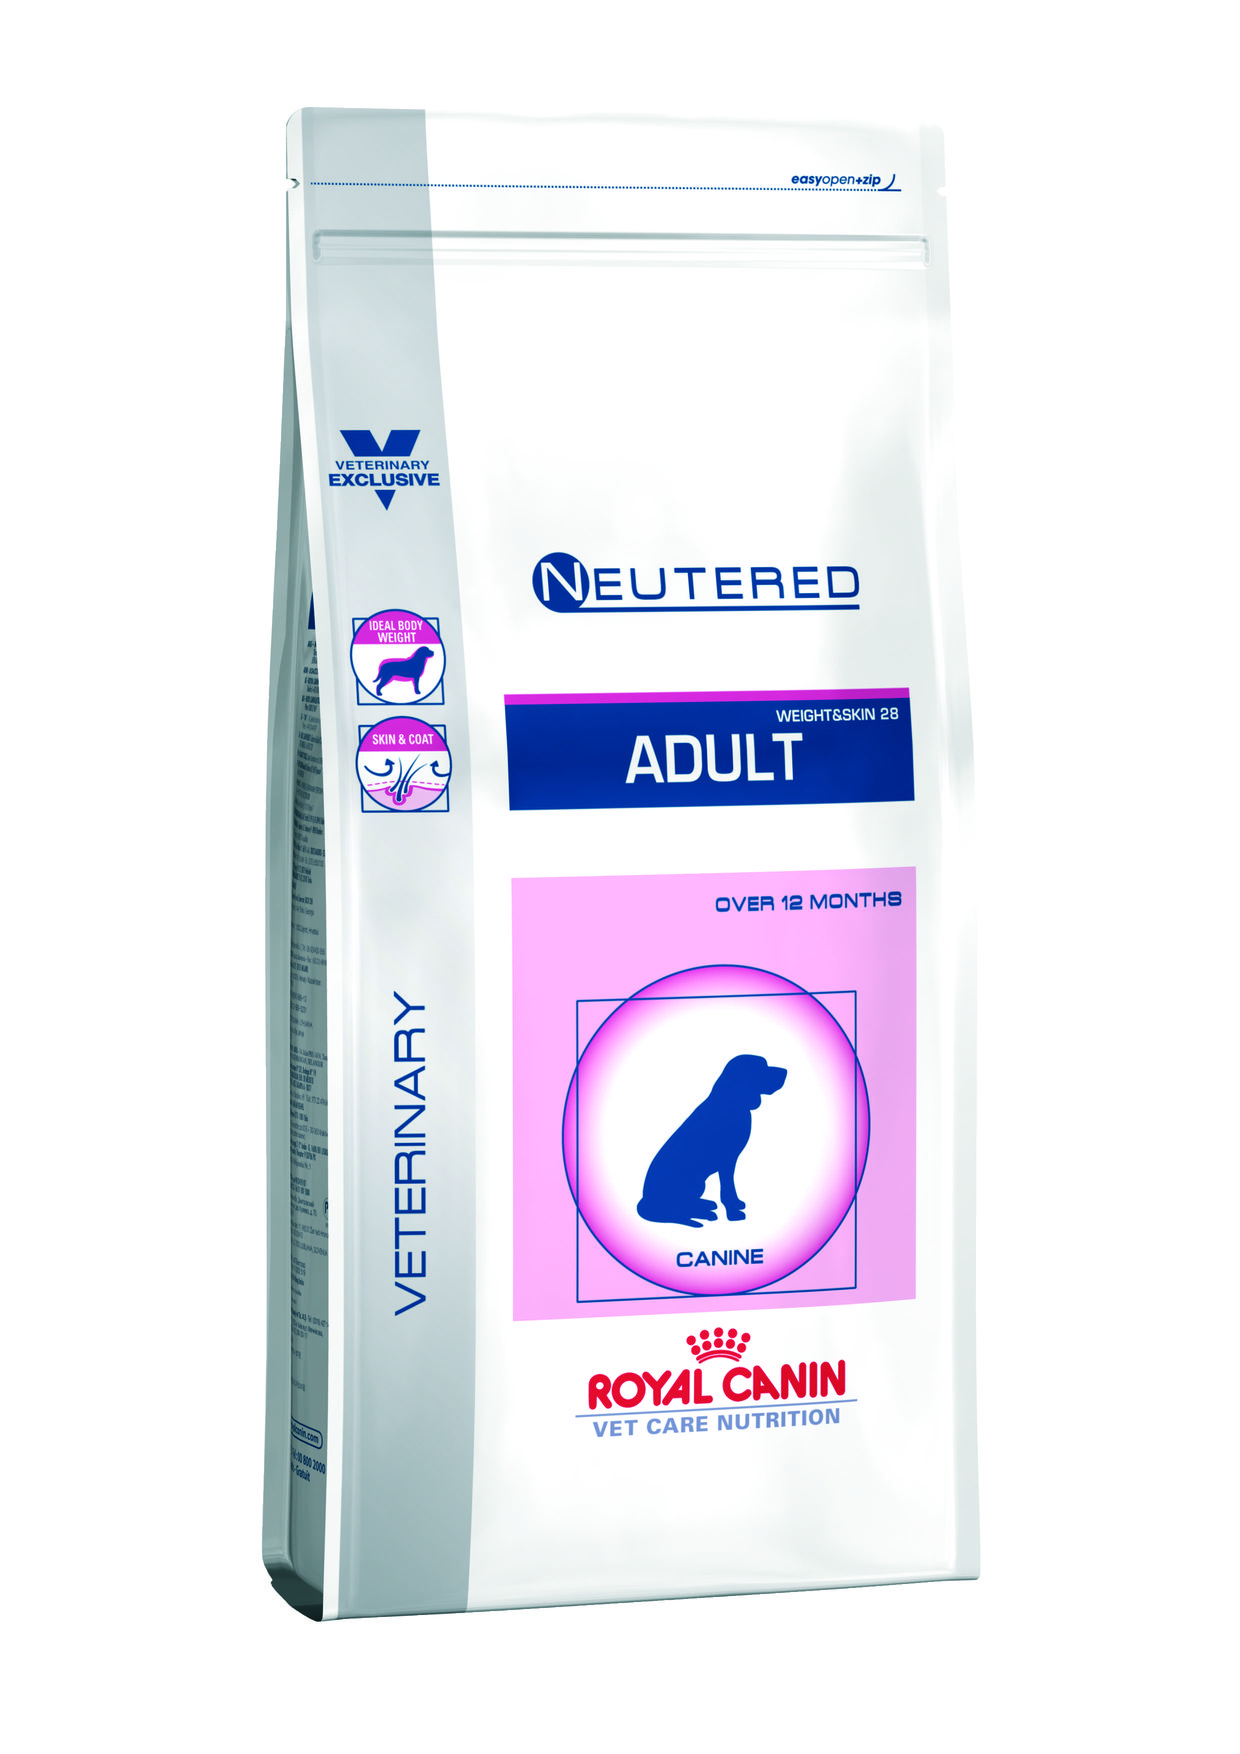 royal canin neutured chien adulte plus 12 mois